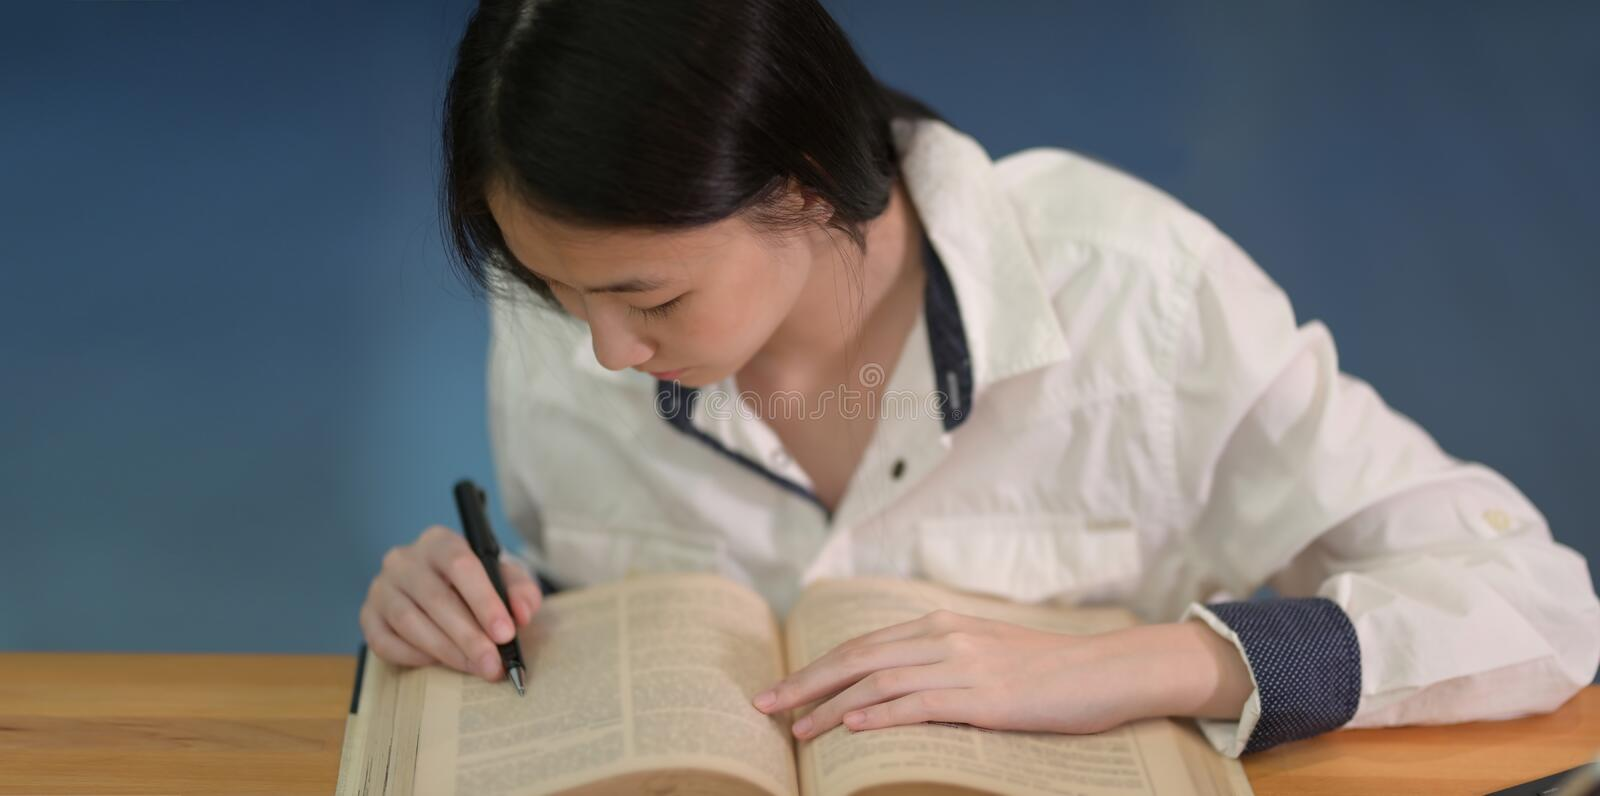 Adorable young collage student studying her exam stock image